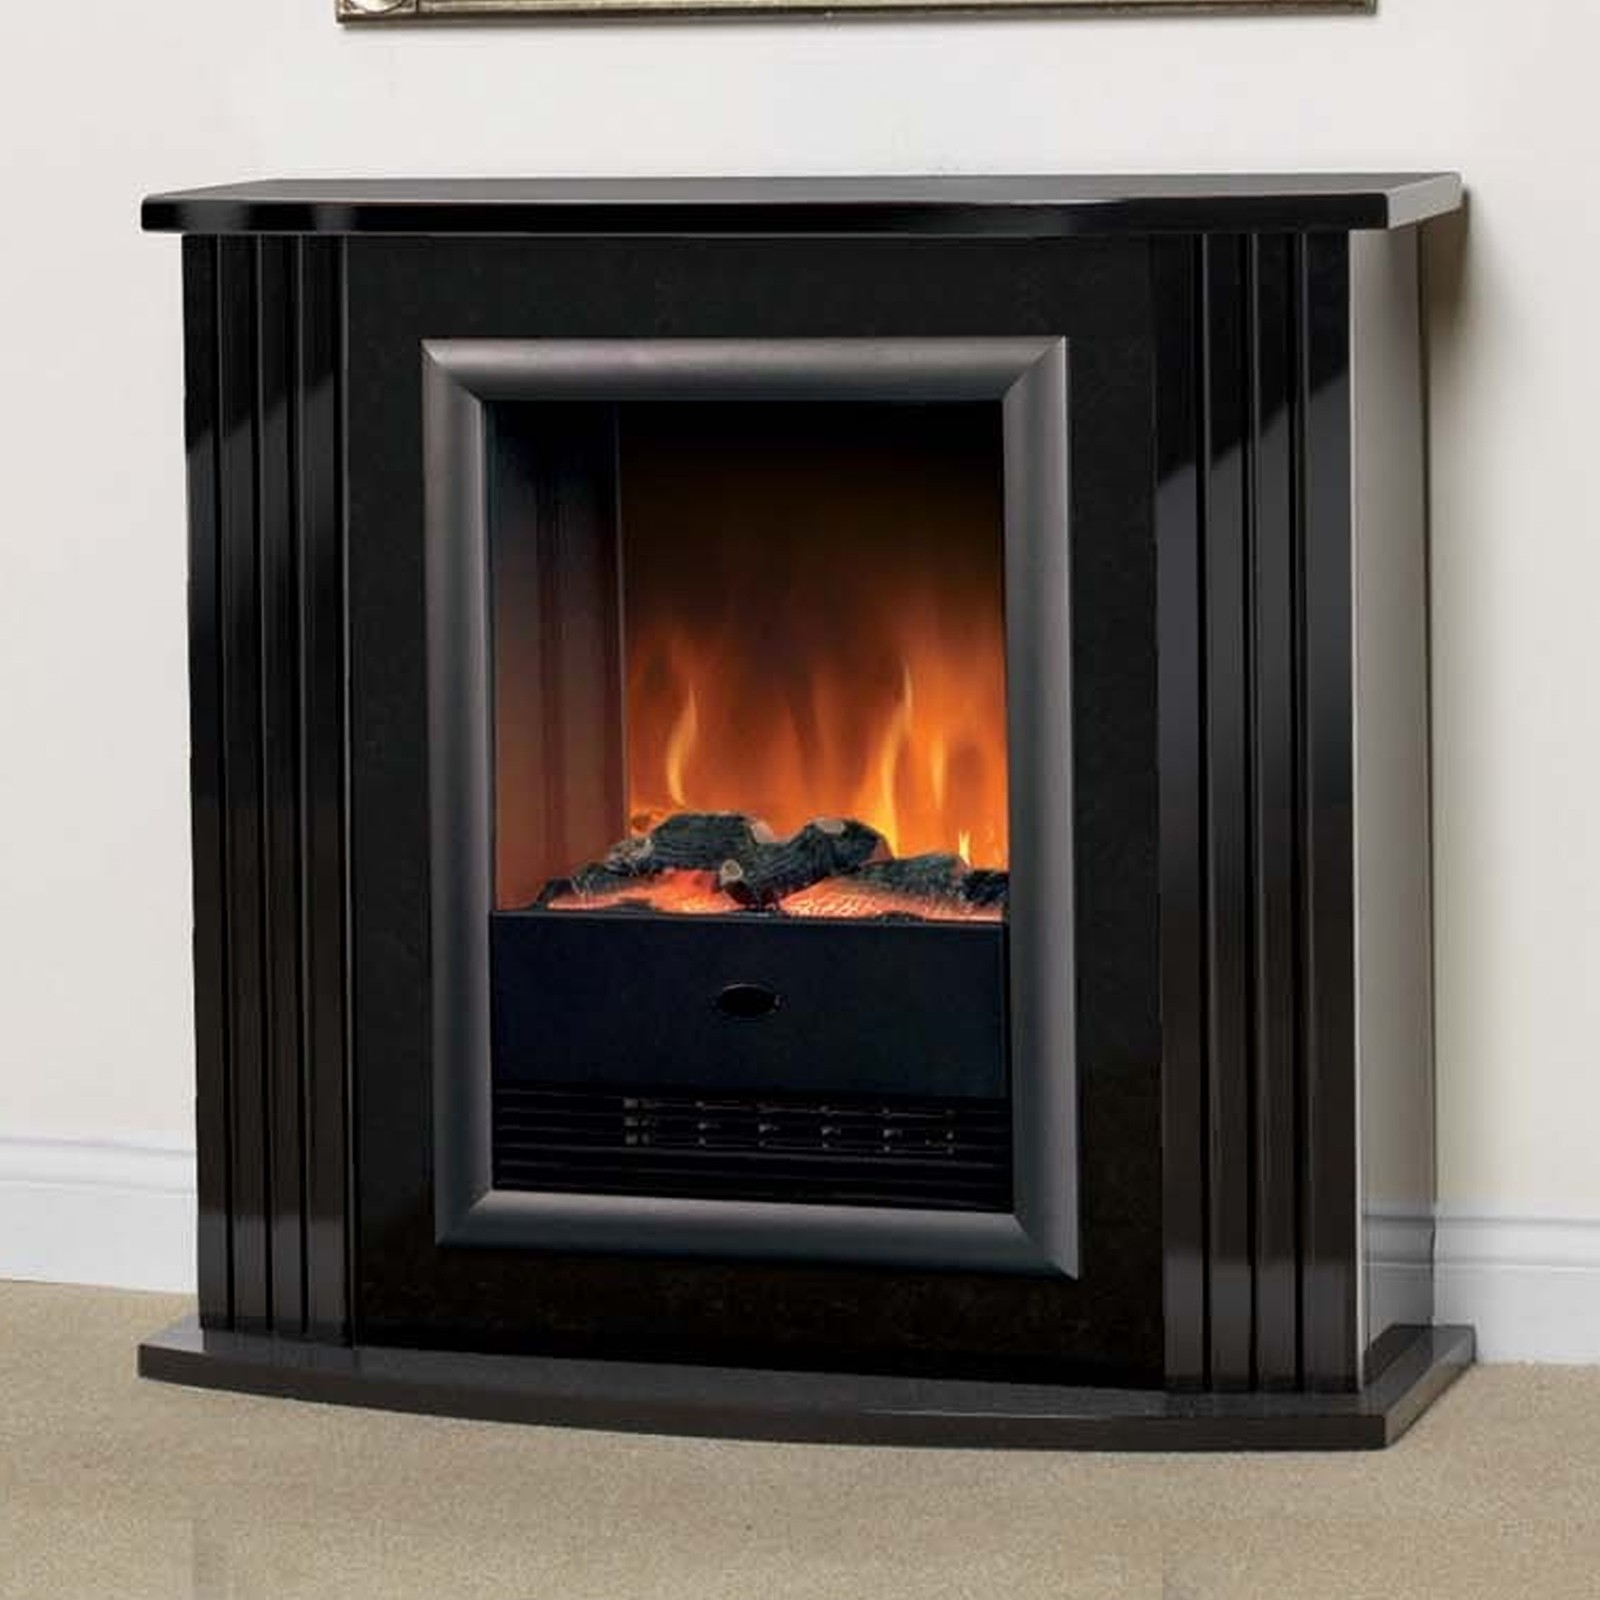 offering competative prices on our range of Fires